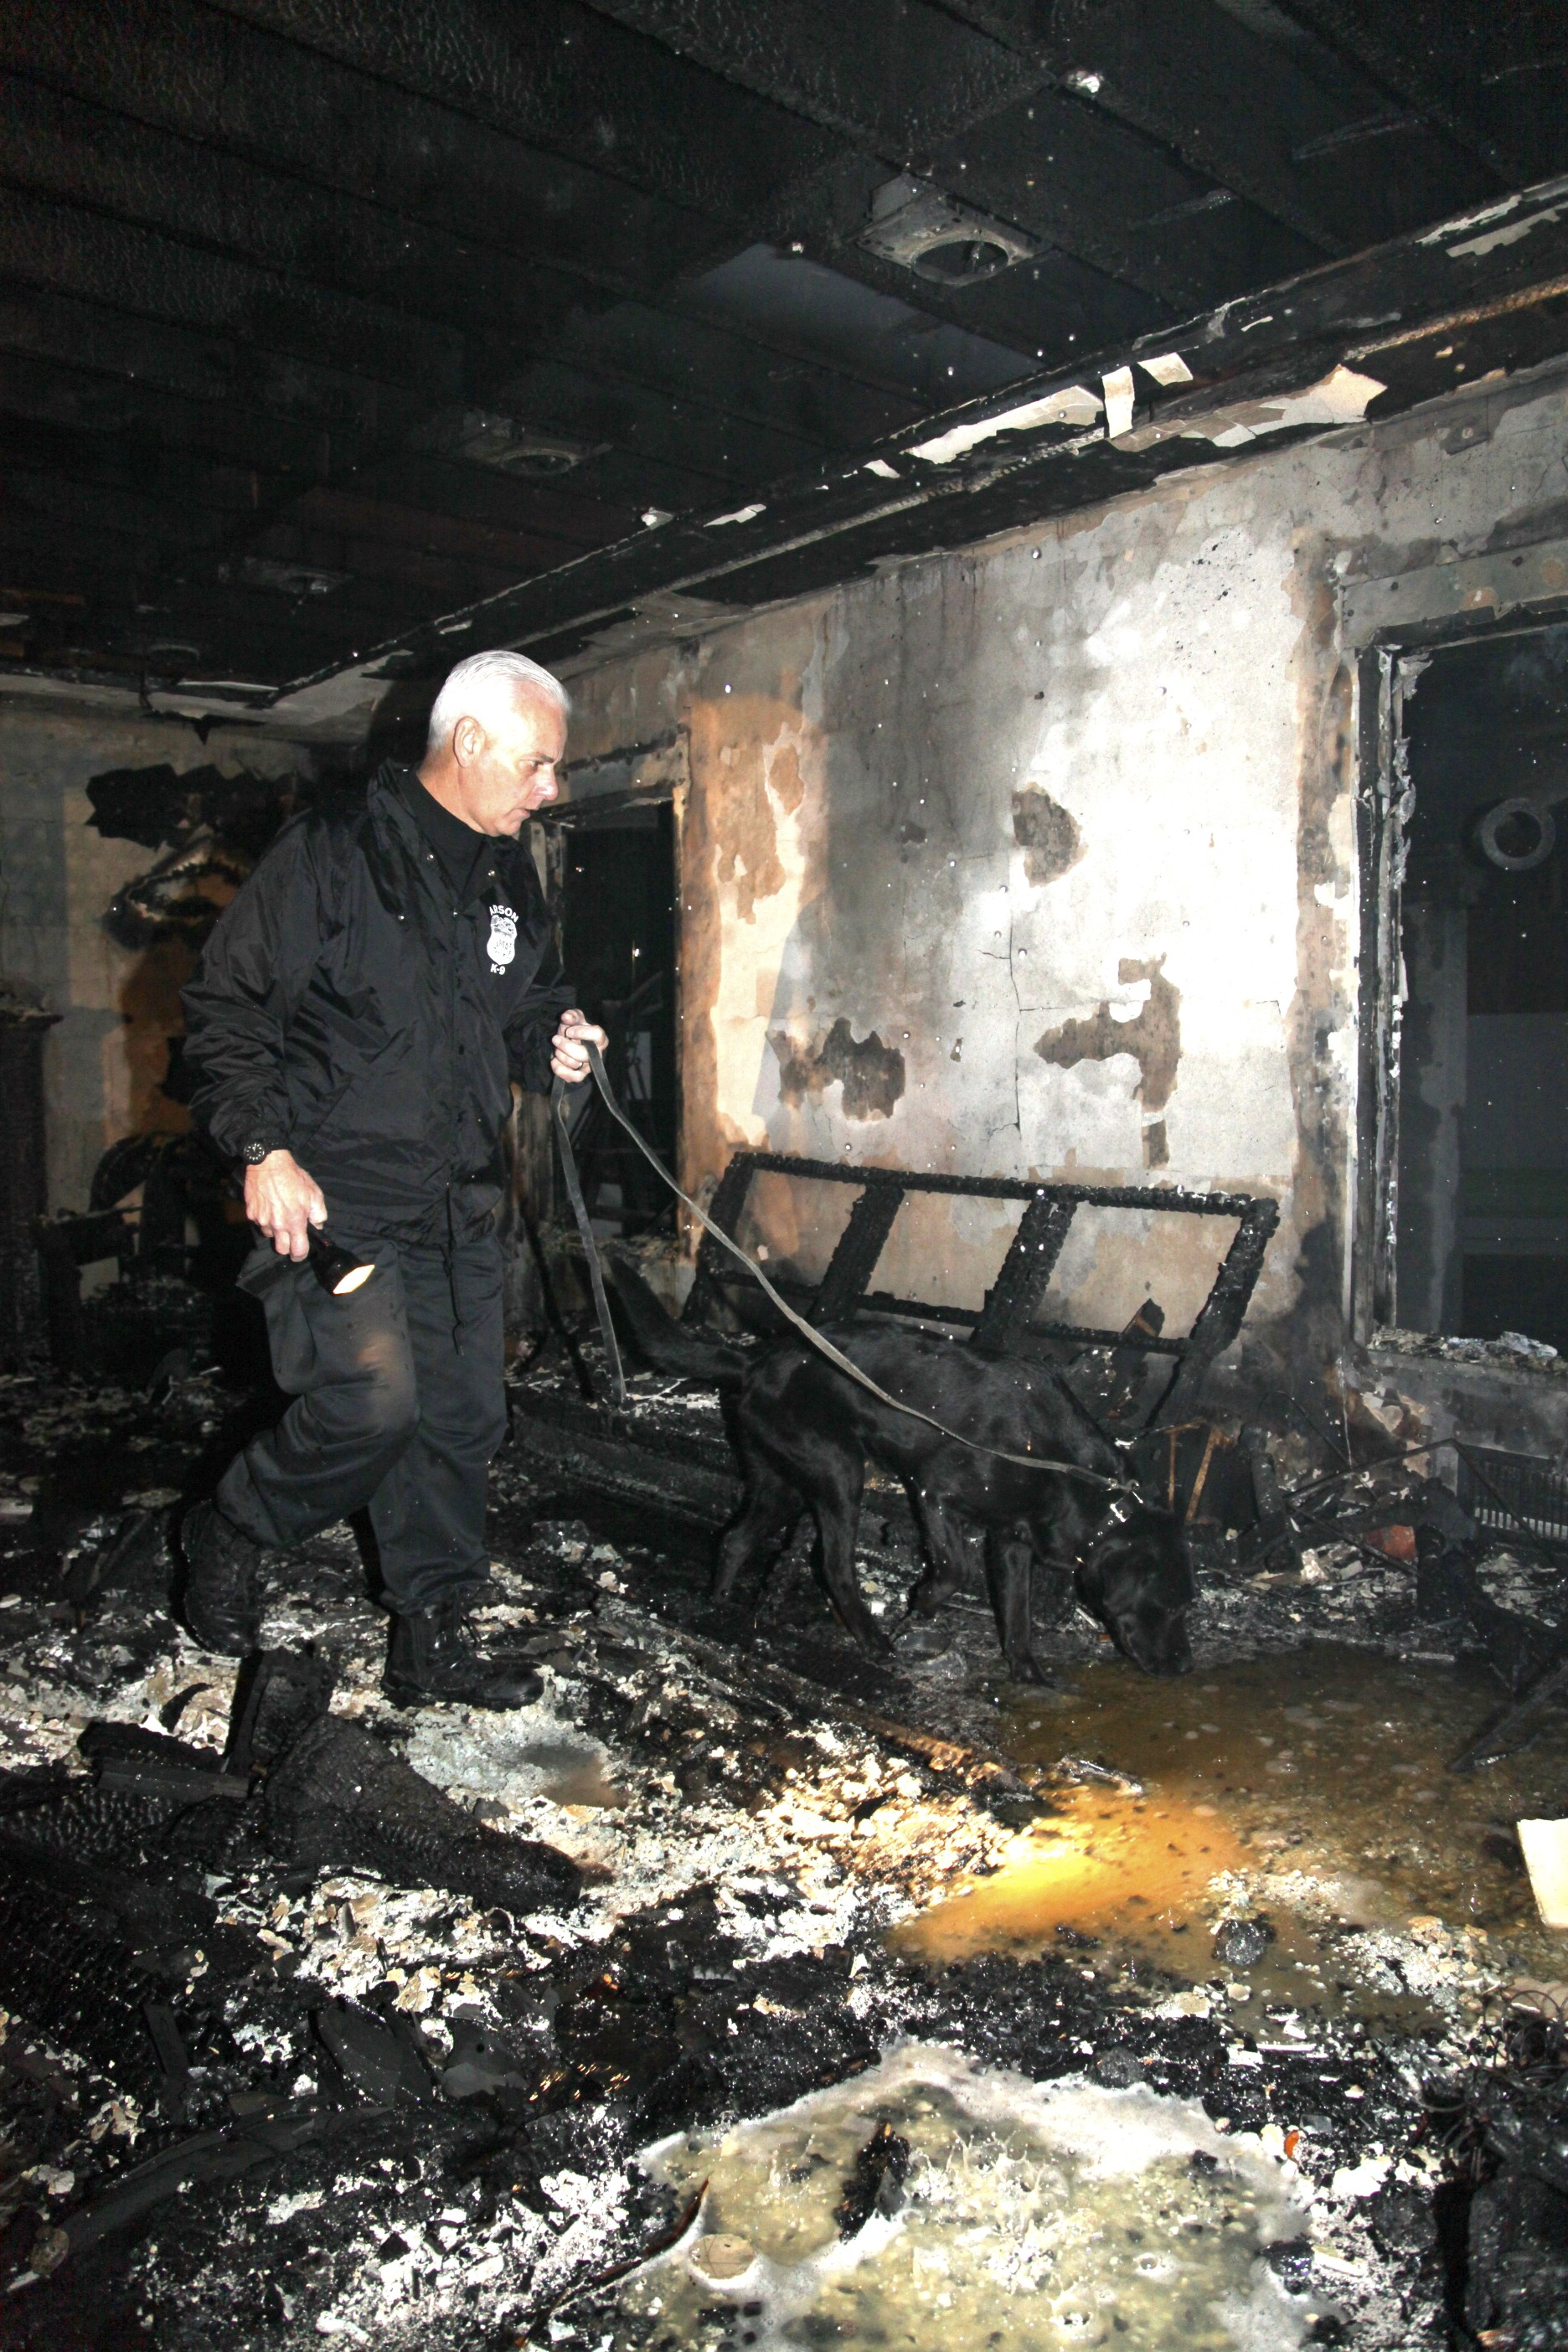 Major and his handler examine the charred remains inside an ash and charcoal filled room, after a structure fire.